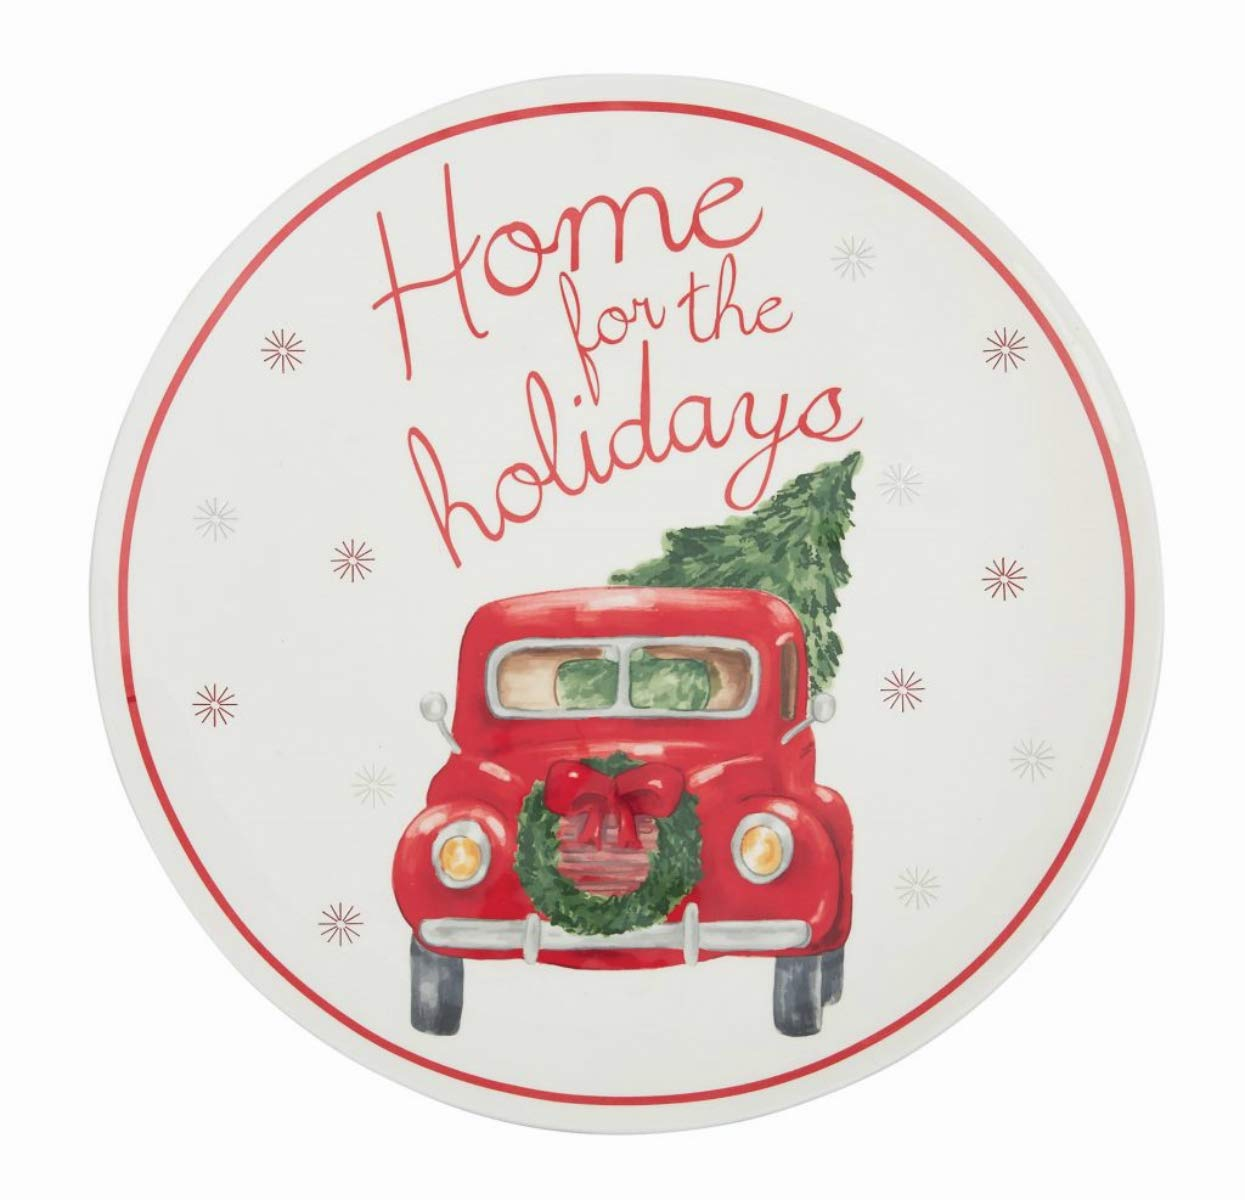 "Mud Pie Home for Holidays Christmas Tree Farm Truck Embellished Platter 14"" diameter 40700175"